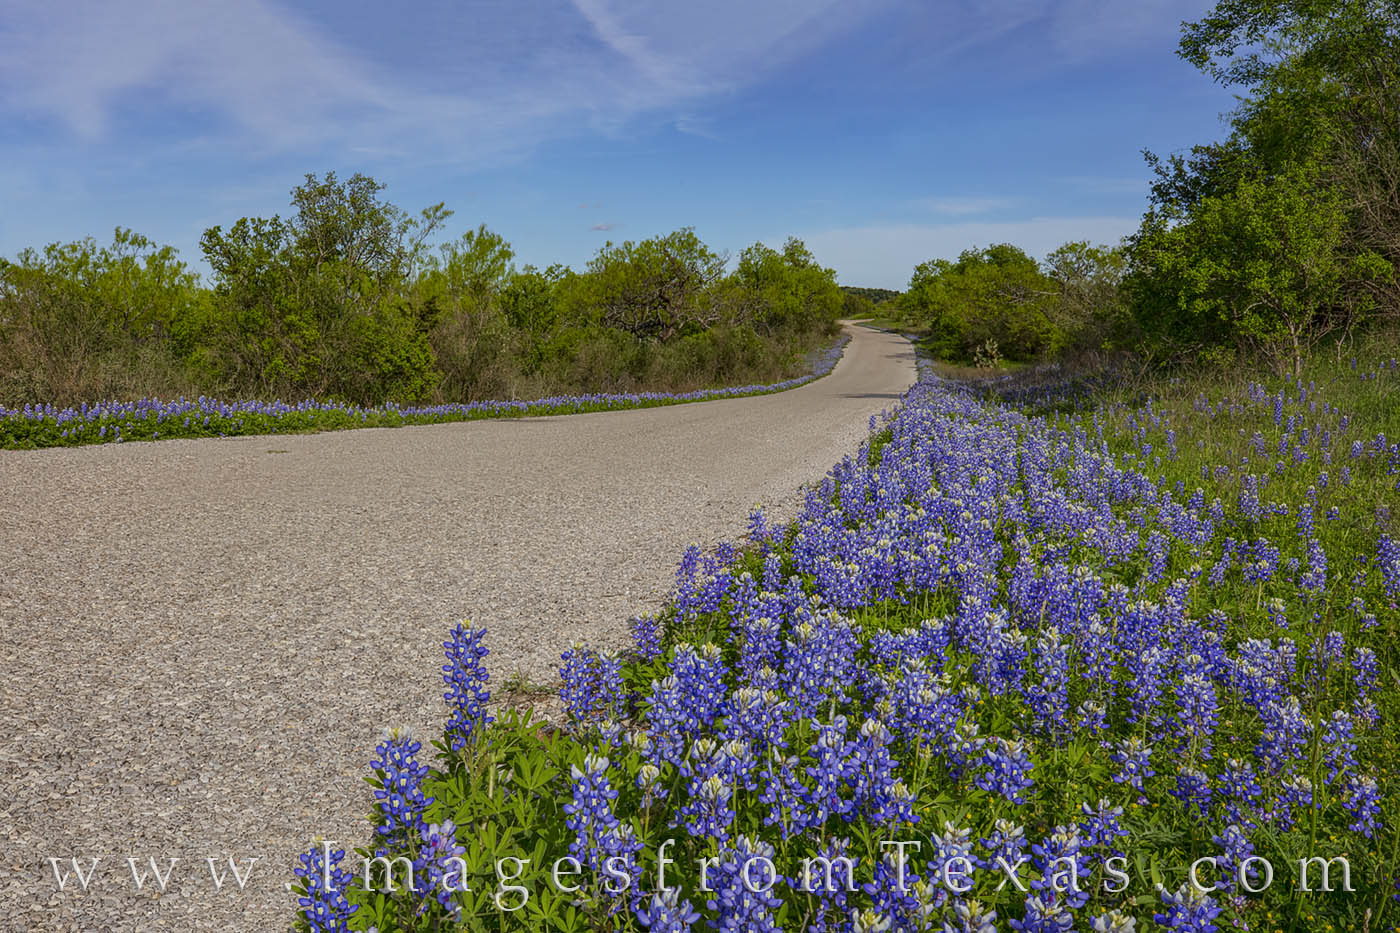 On a small county road between Round Mountain and Marble Falls, bluebonnets fill the shoulders with leading colors of blue.